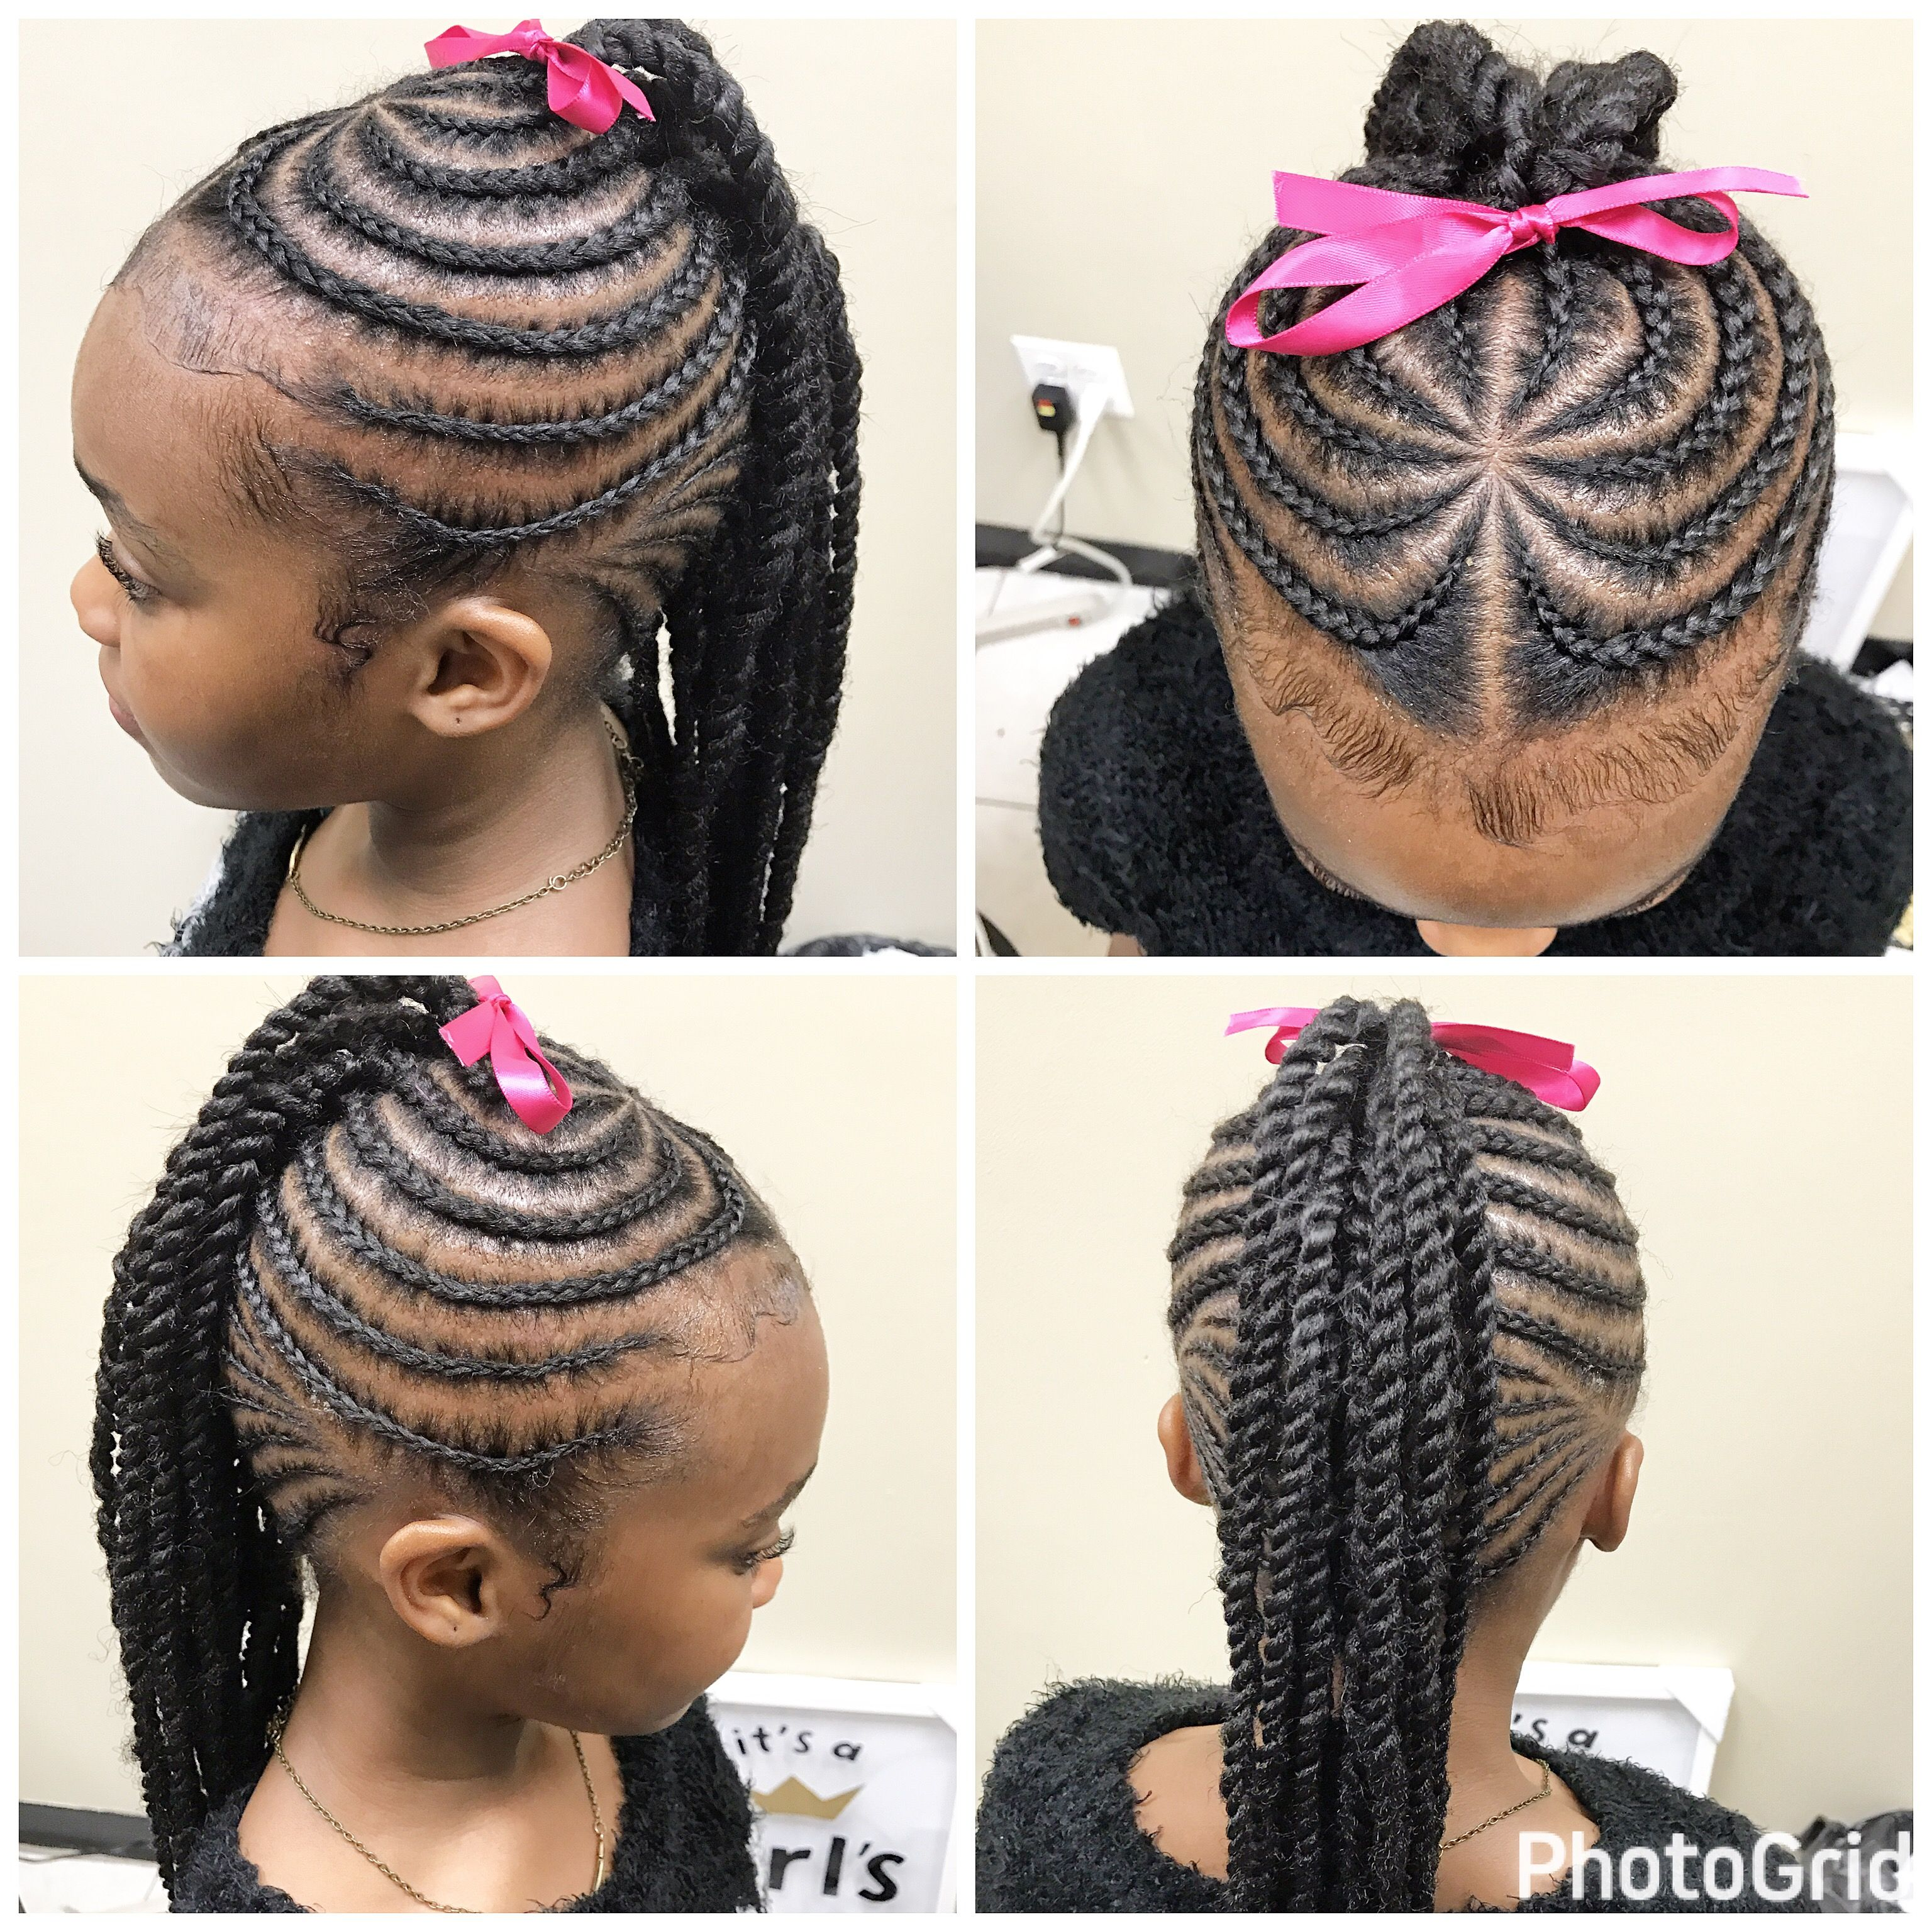 District Heights Md Kids Braided Hairstyles Natural